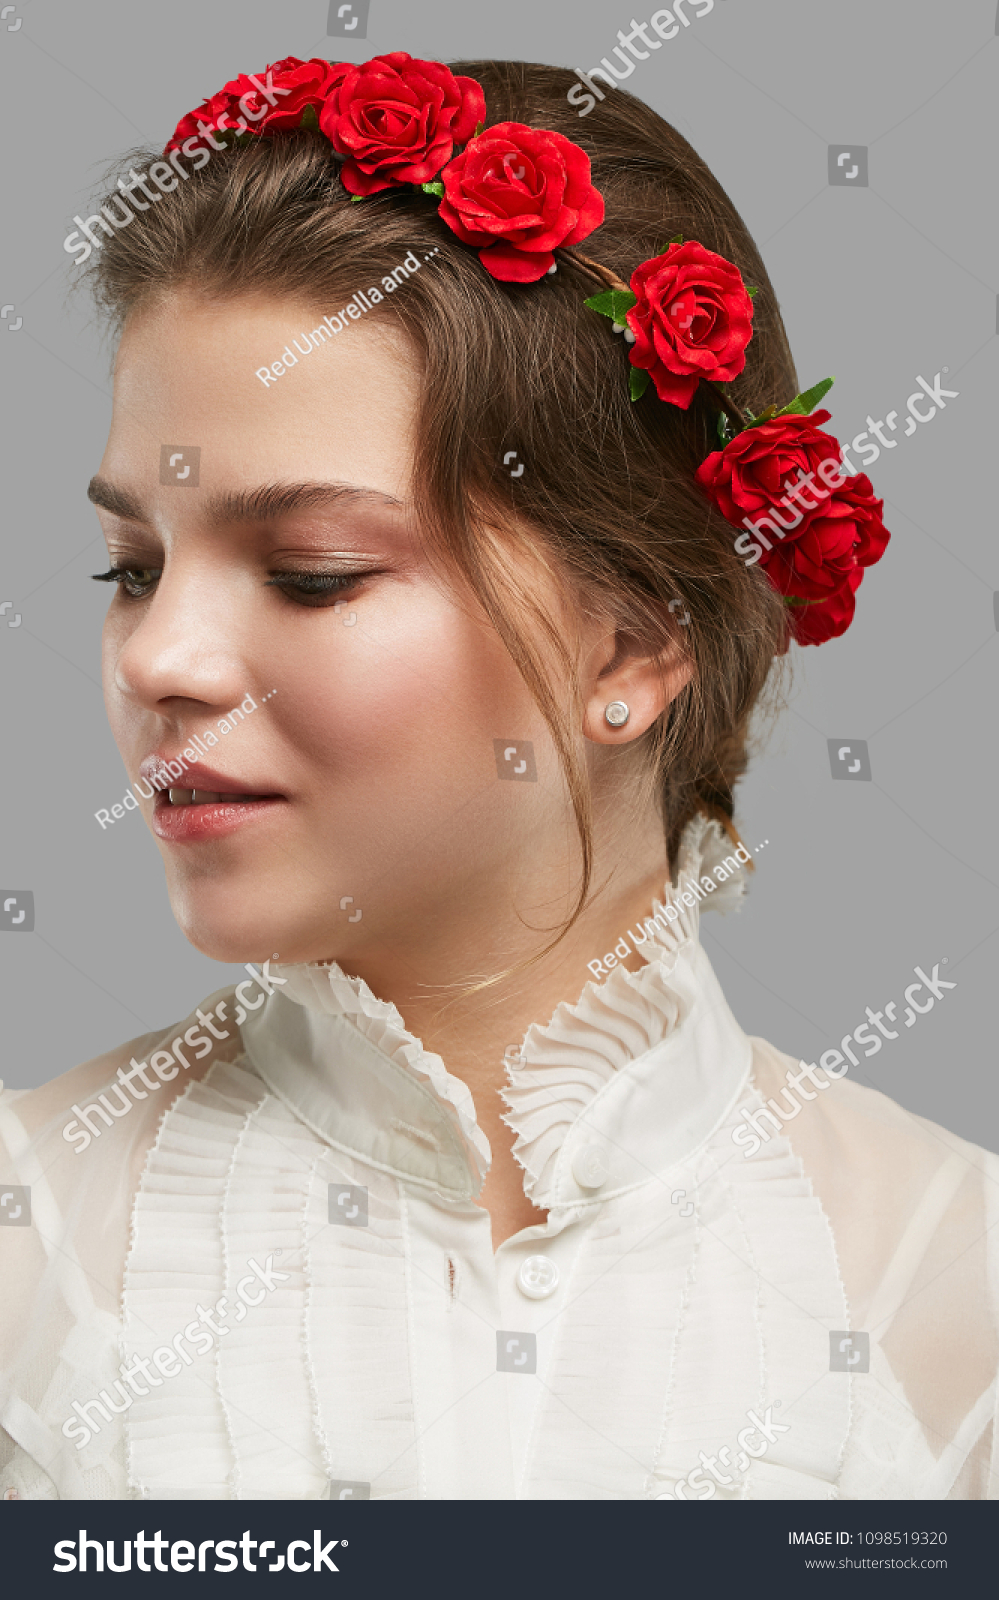 Portrait charming young lady bohemian flower stock photo edit now portrait of a charming young lady with a bohemian flower crown in a white vintage izmirmasajfo